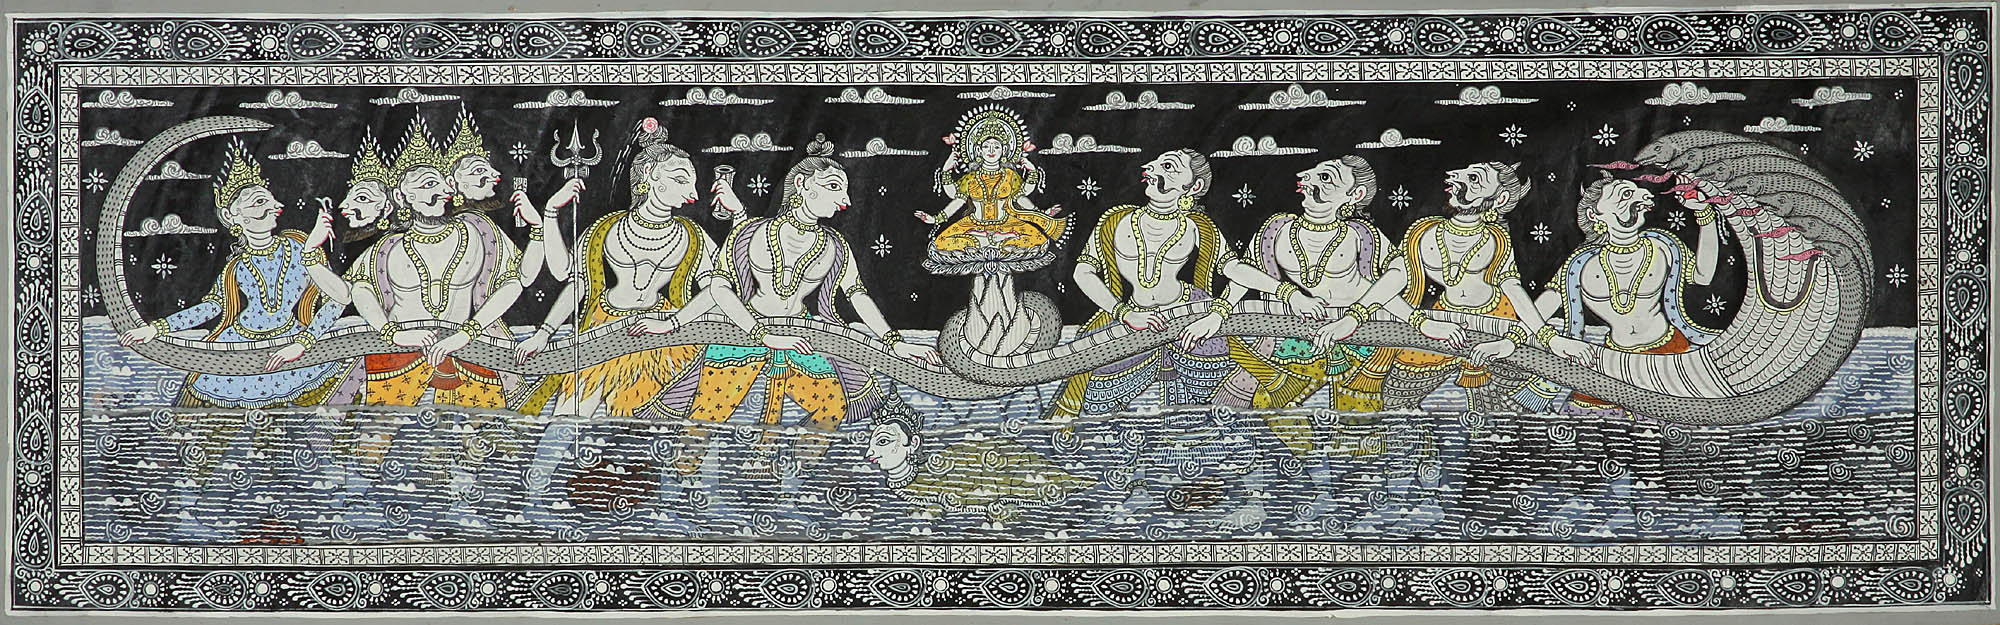 samudra manthan coloring pages - photo#19